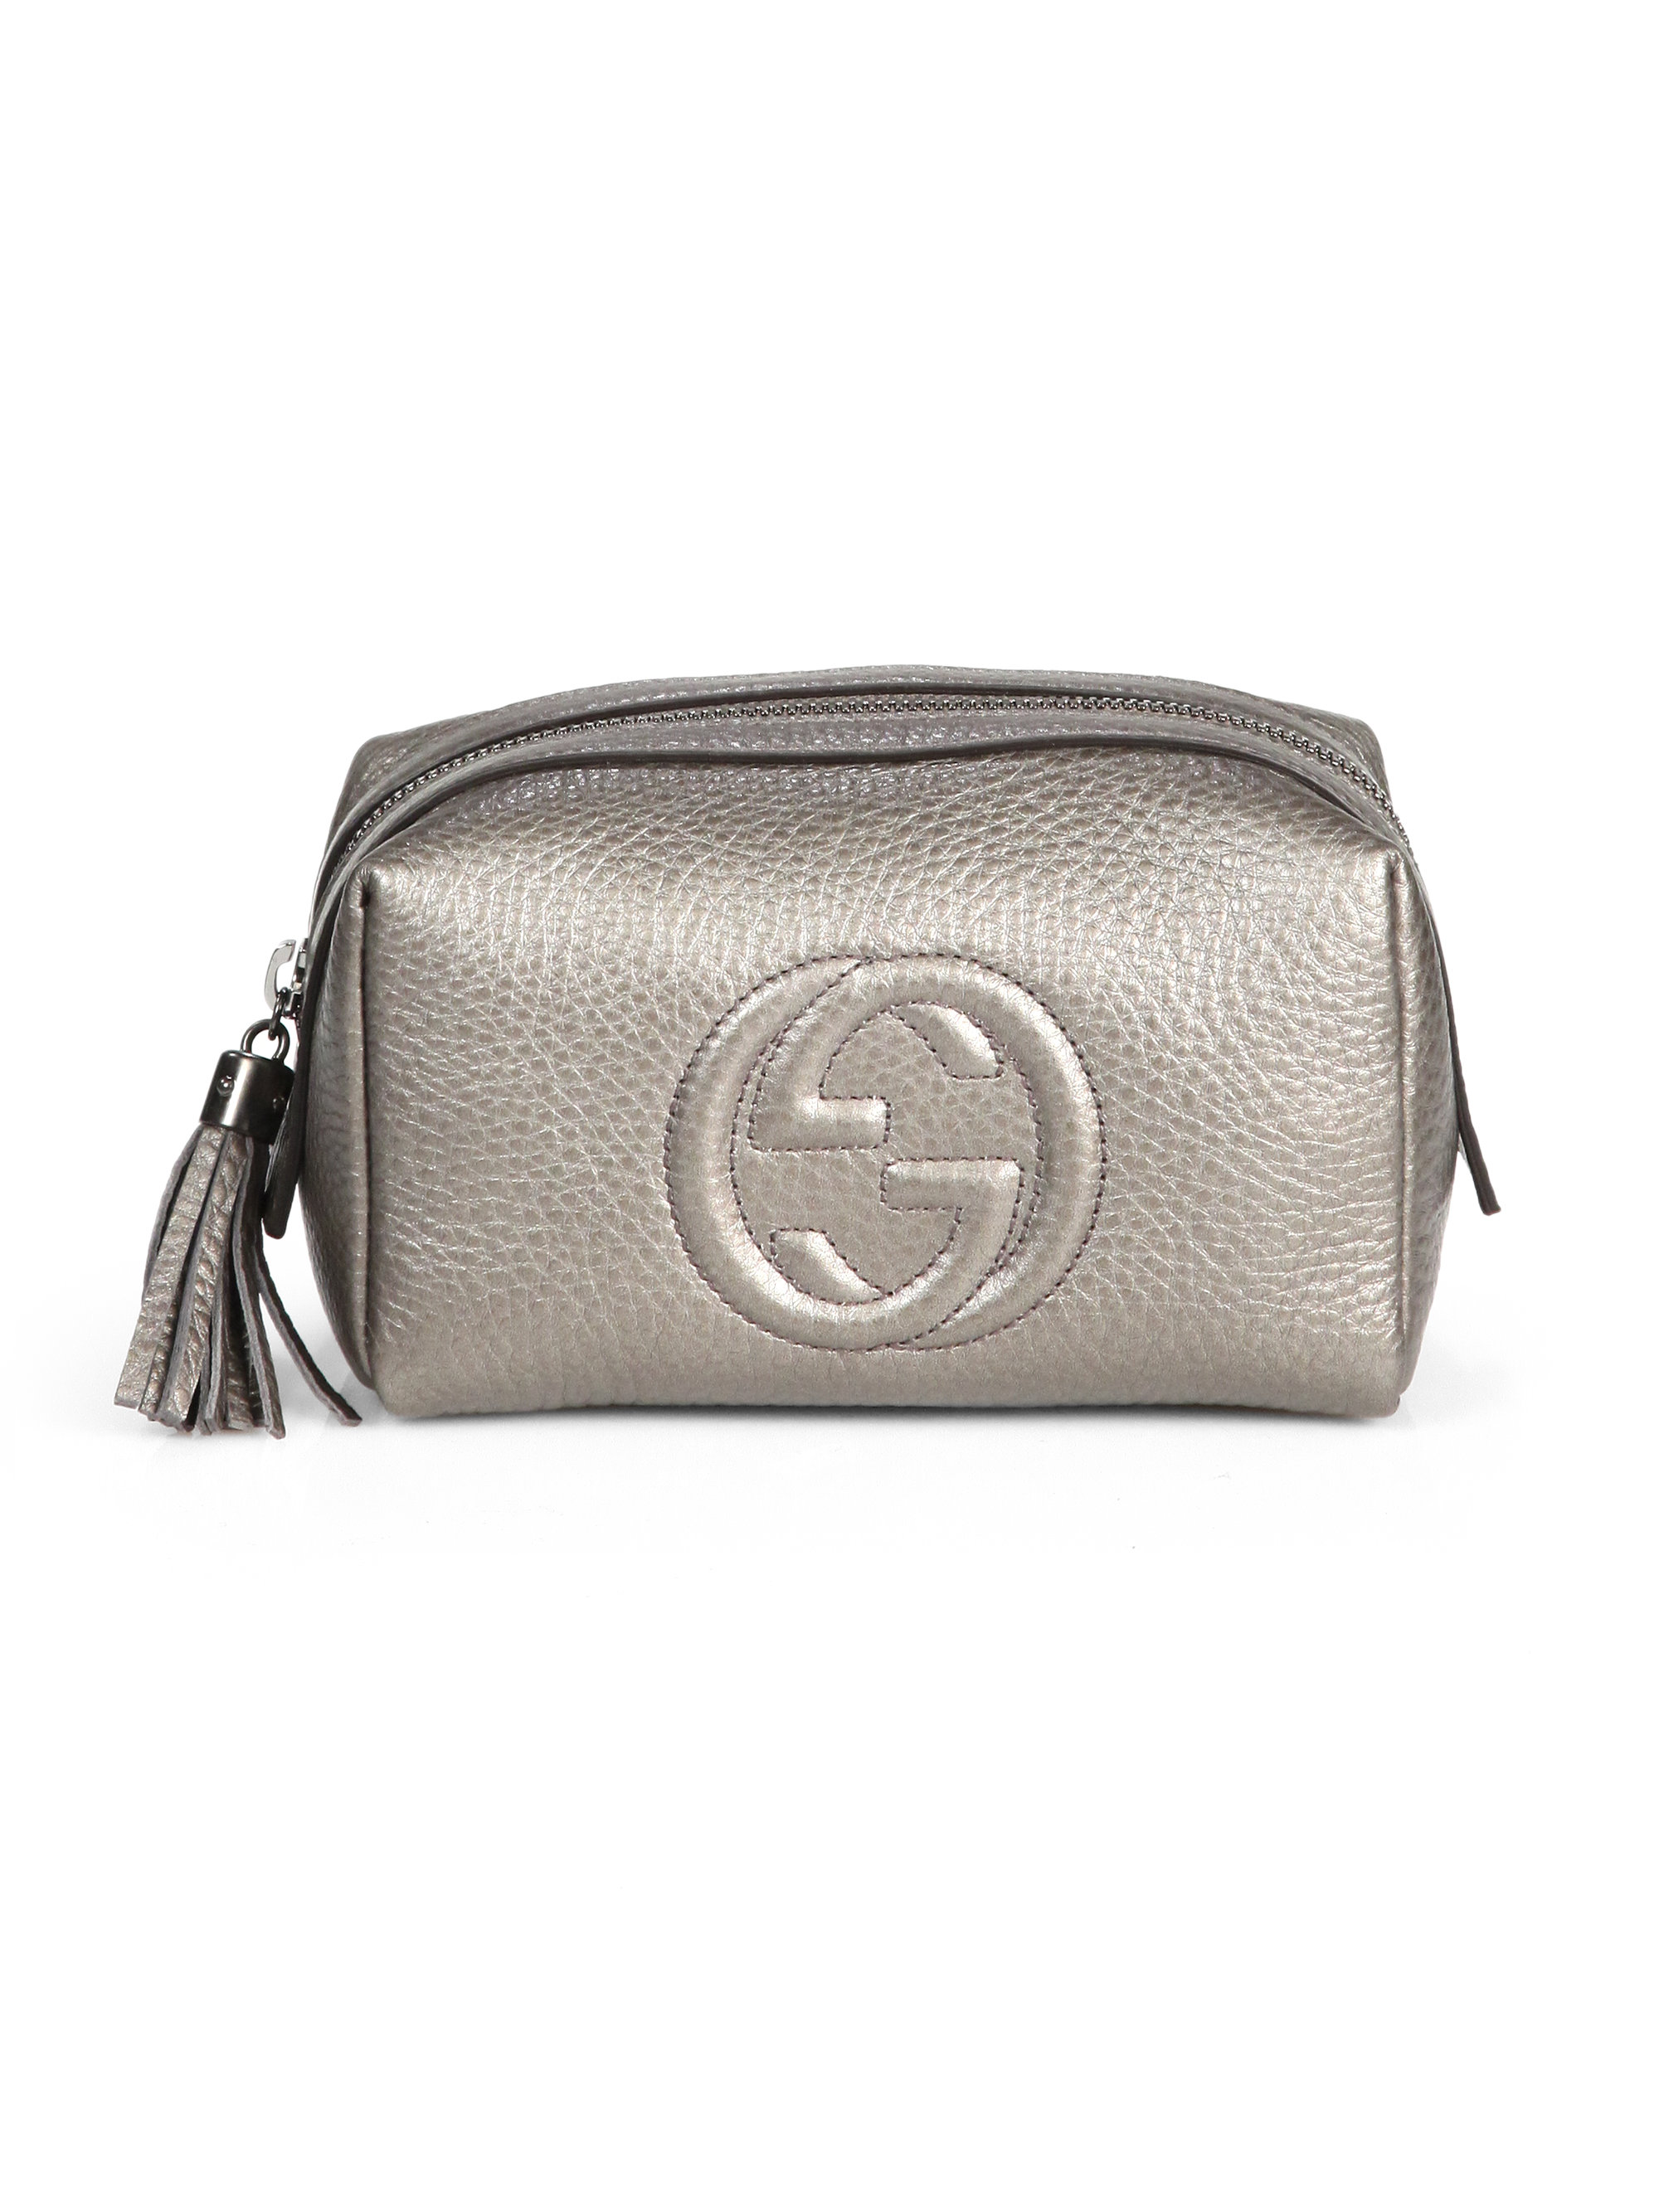 2177630a3e97 Lyst - Gucci Soho Leather Cosmetic Case in Metallic